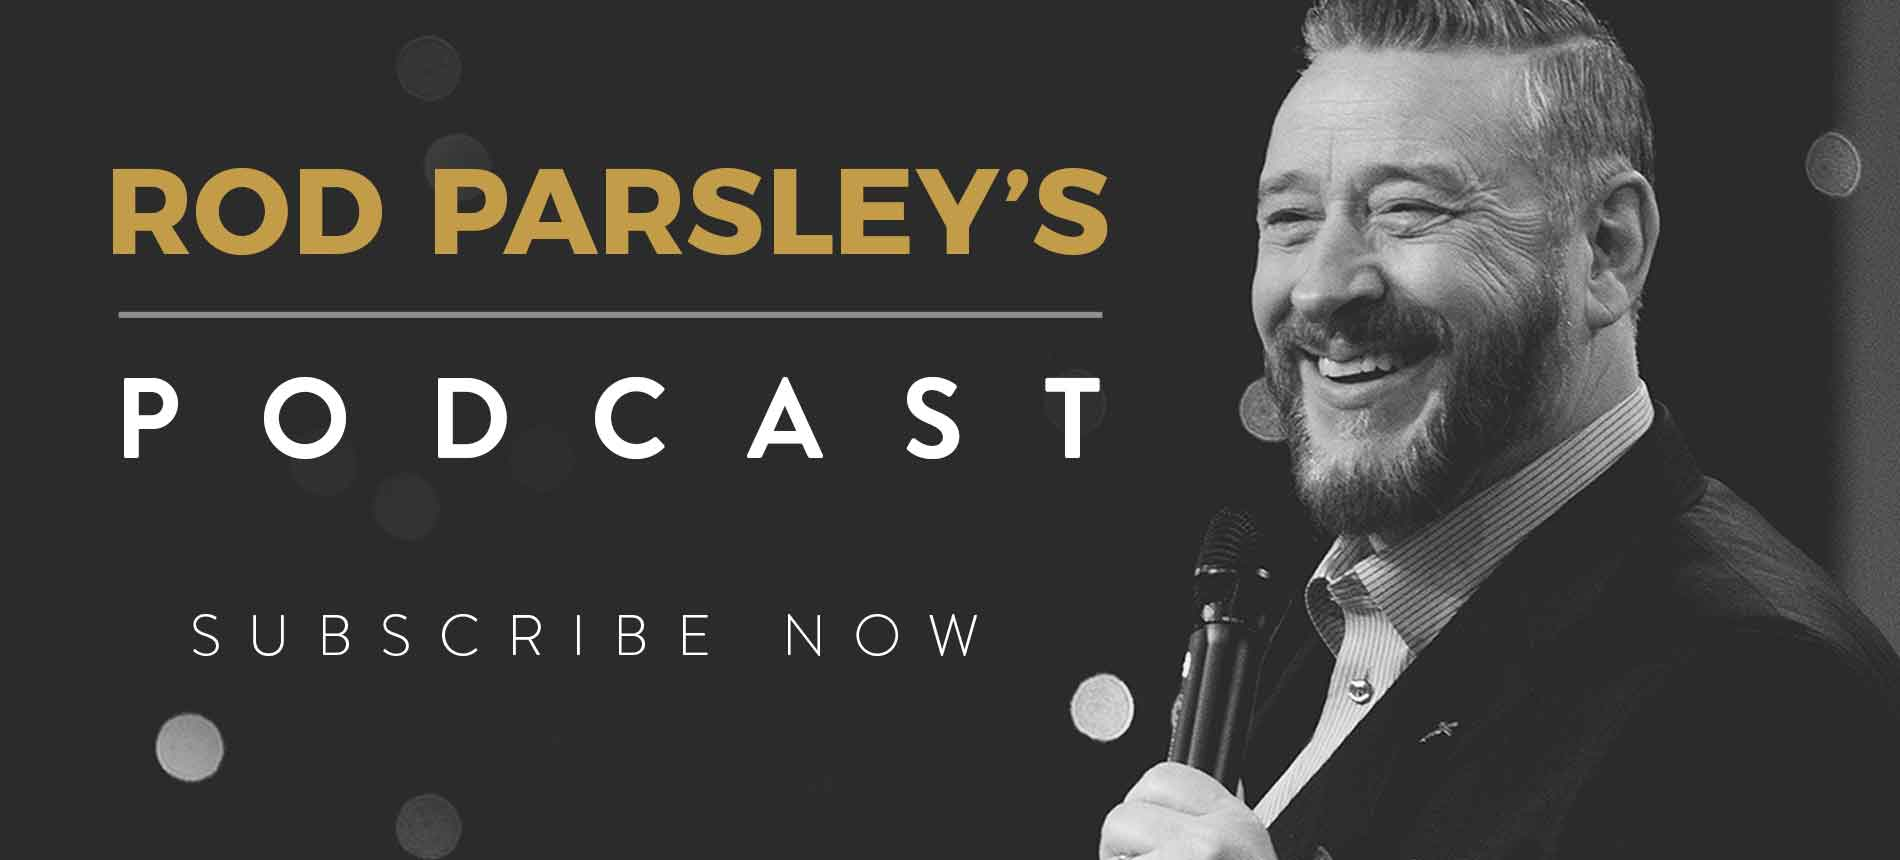 WHCE | Rod Parsley Podcast